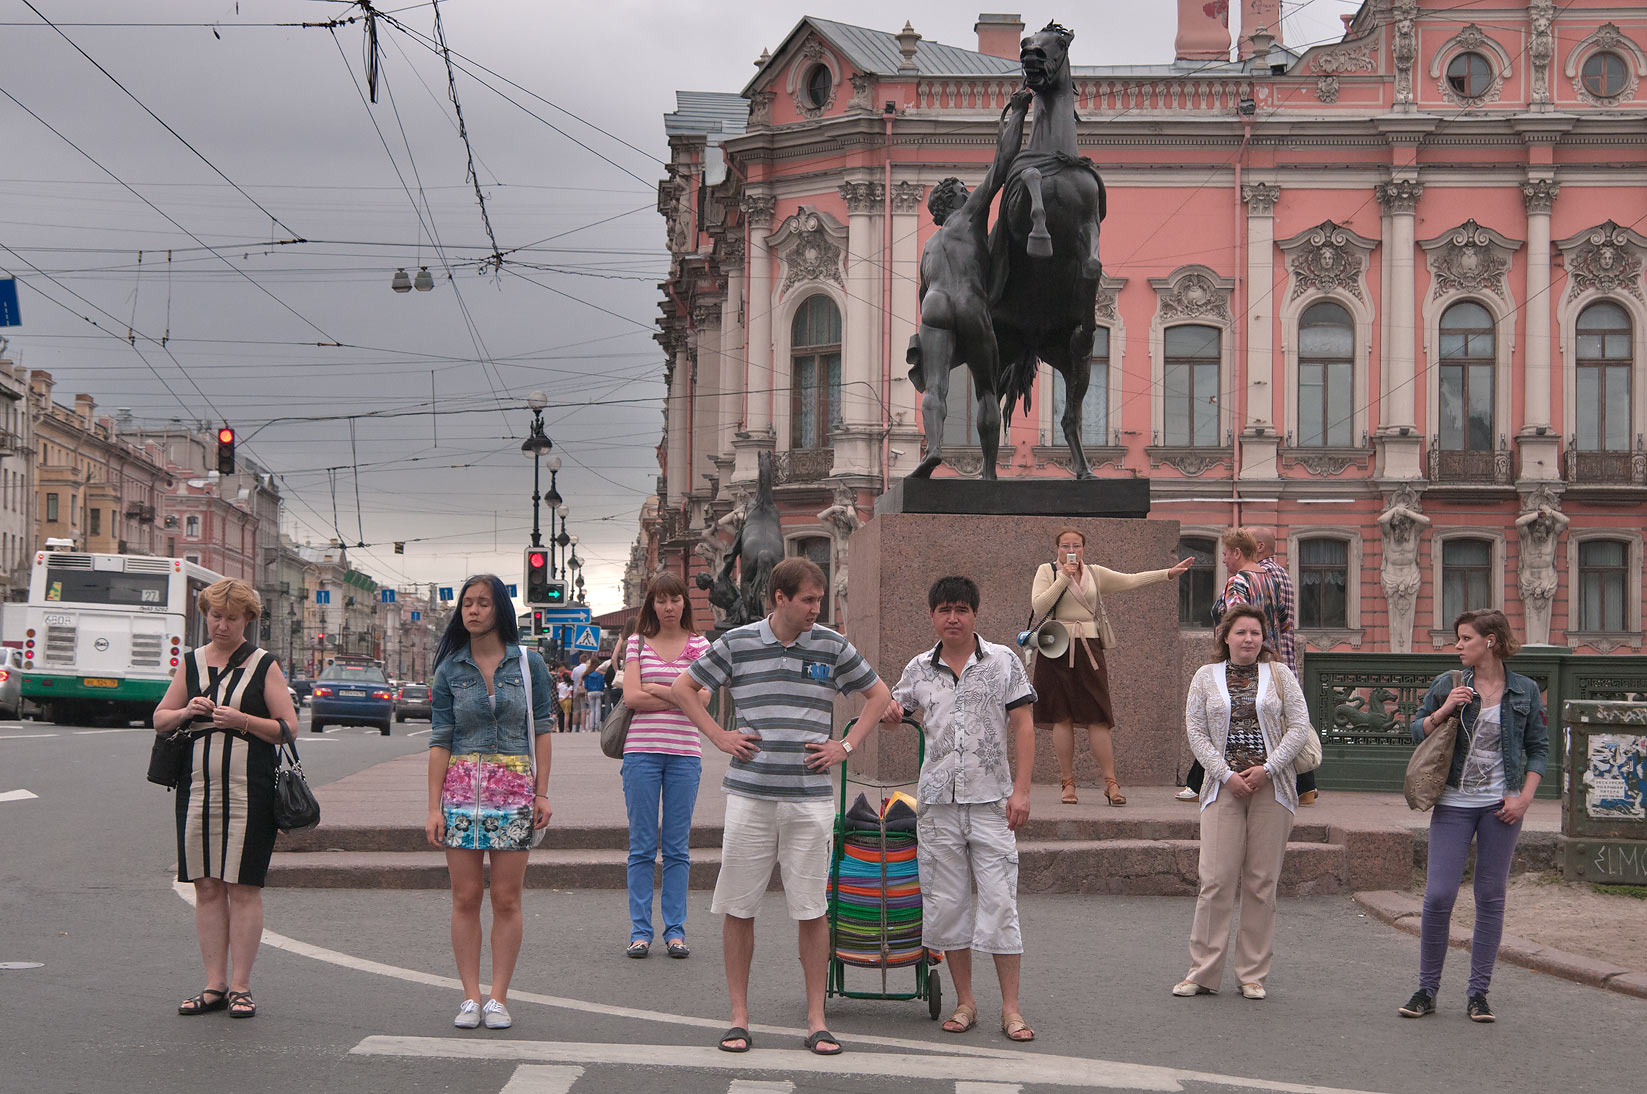 Nevsky Prospect (main street of the city) near Anichkov Bridge. St.Petersburg, Russia